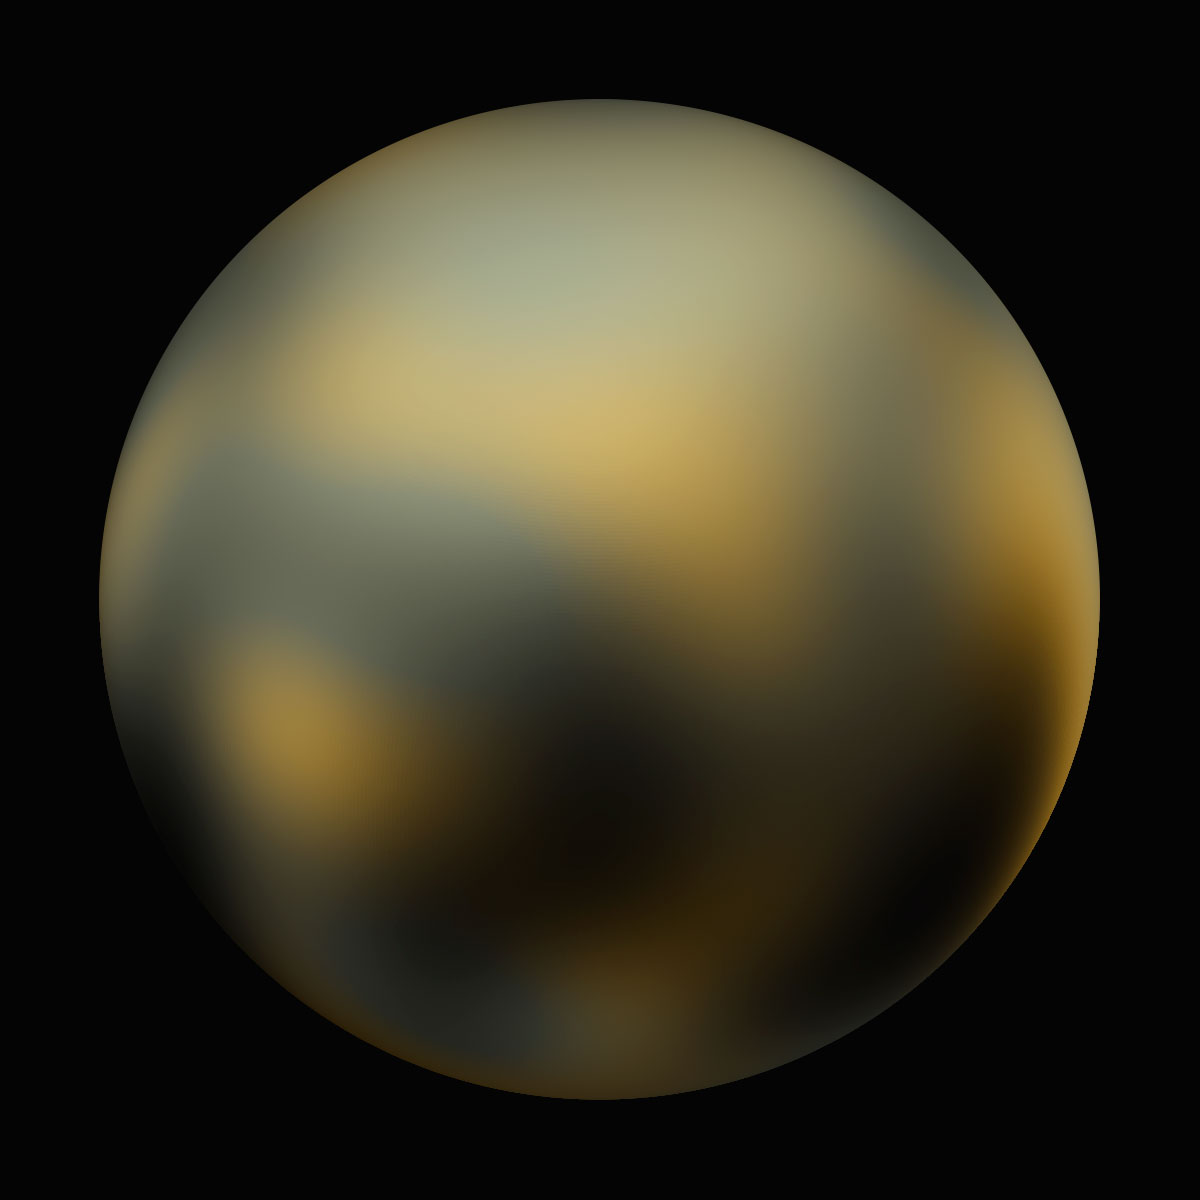 Pluto:                               This image is part of the most detailed set of images ever taken of the distant dwarf planet Pluto. The Hubble images were sharpest view of Pluto until NASA's New Horizons released a new image this year and were invaluable for picking out the planet's most interesting-looking hemisphere for New Horizons to swoop over when it flies by Pluto in 2015.                                                              Though Pluto is arguably one of the public's favorite planetary objects, it is also the hardest of which to get a detailed portrait because the world is small and very far away. Image released on Feb. 4, 2010.